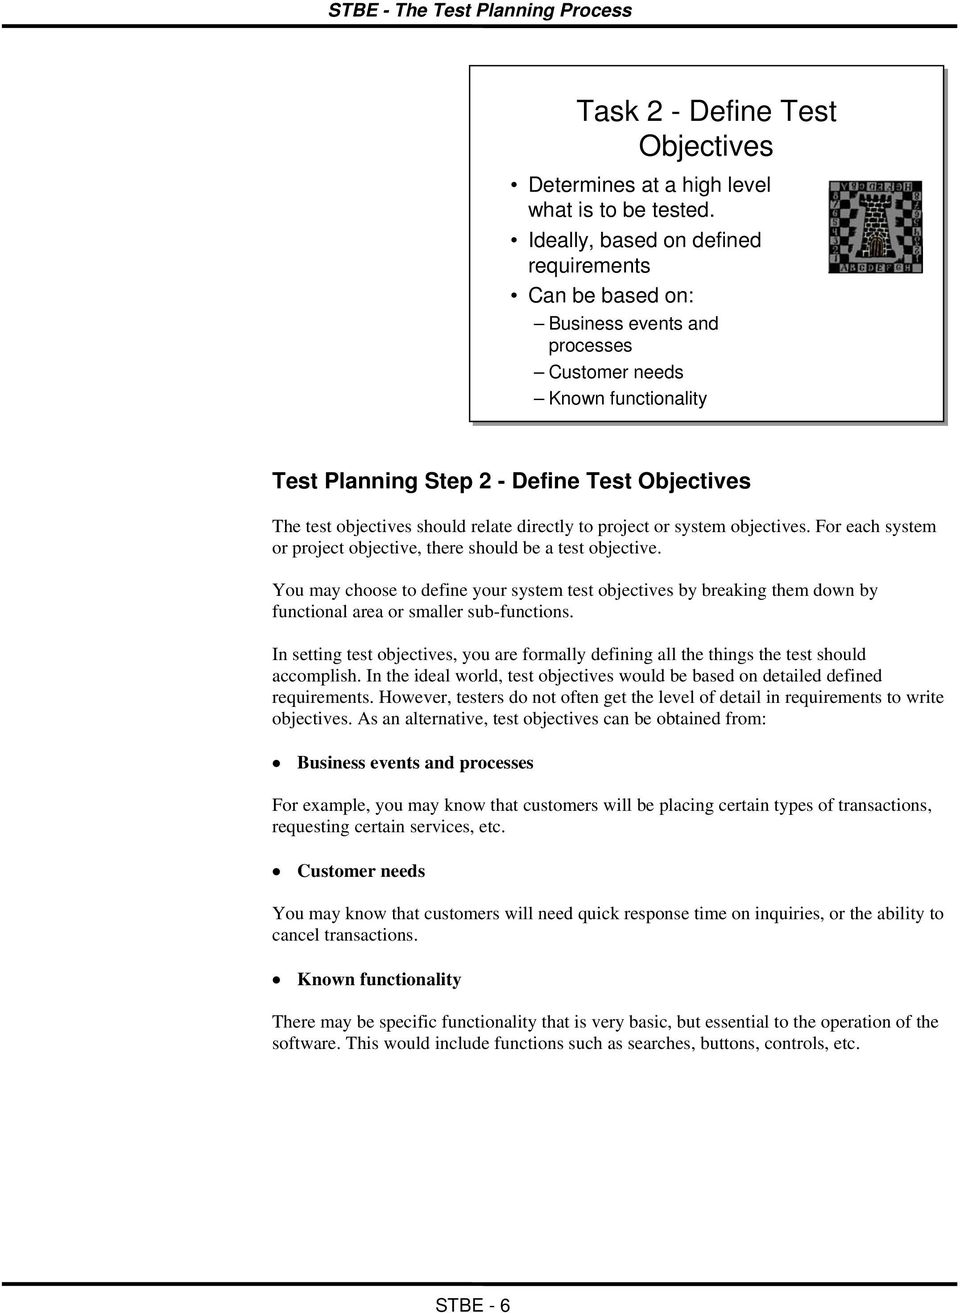 relate directly to project or system objectives. For each system or project objective, there should be a test objective.